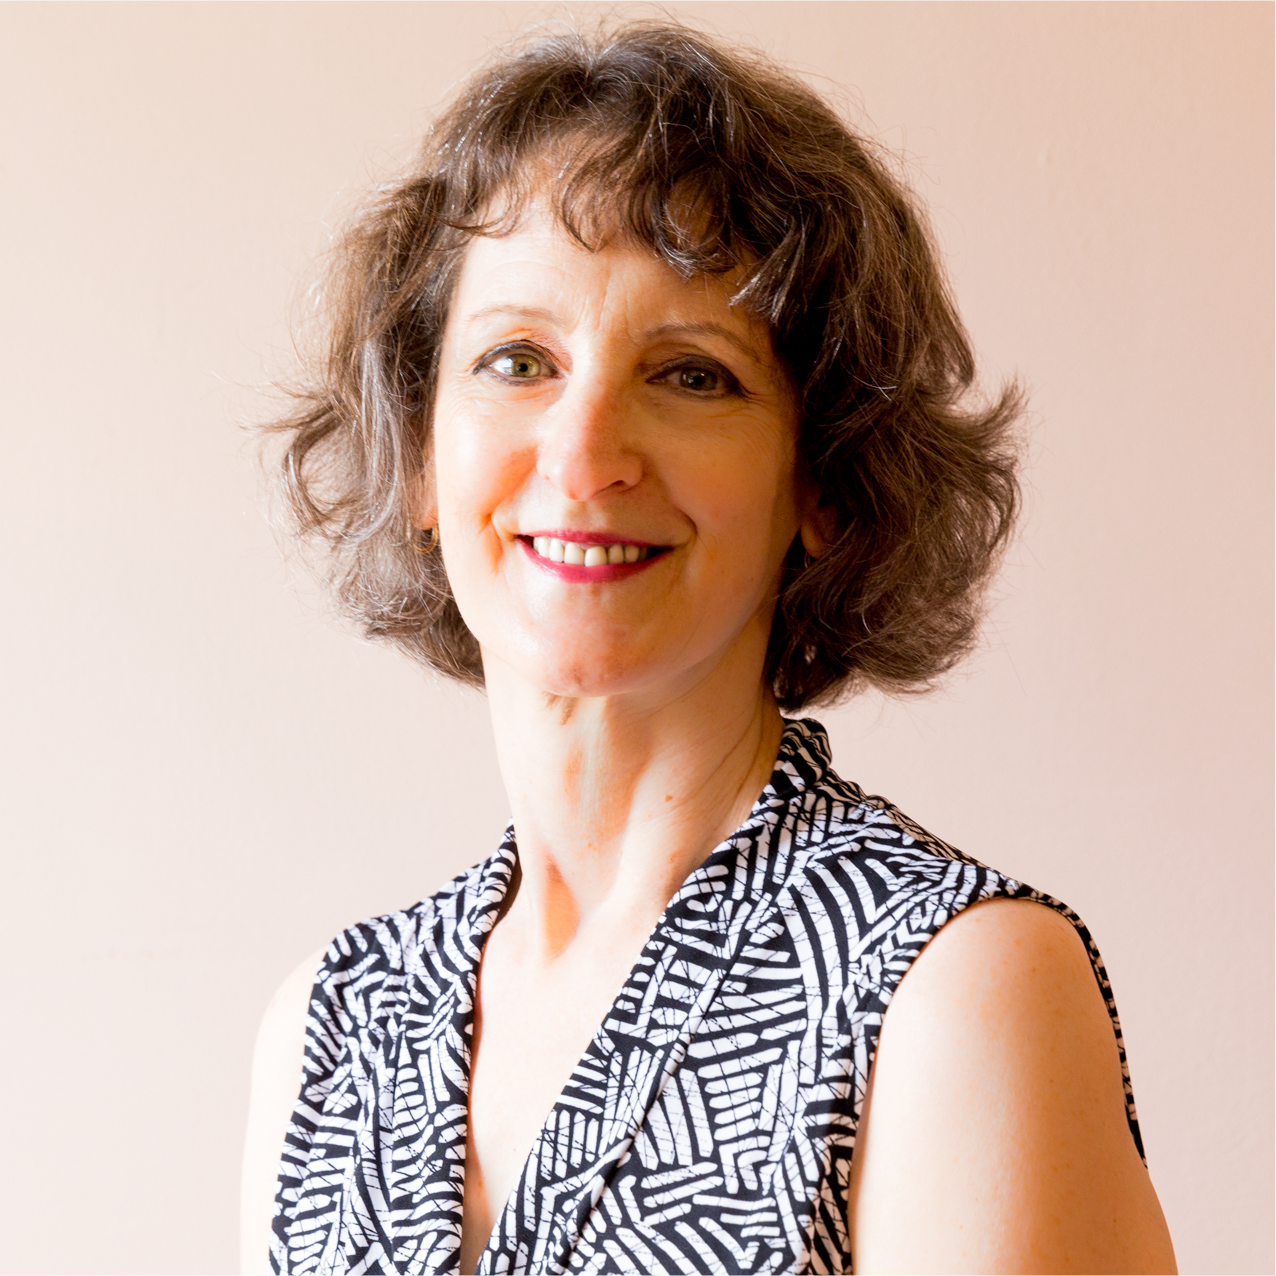 LUCIA VAIL, PhD  is a licensed clinical psychologist in midtown Manhattan, New York. Dr. Vail practices individual and group psychotherapy with adults experiencing such psychological difficulties as relationship problems, anxiety and depression.